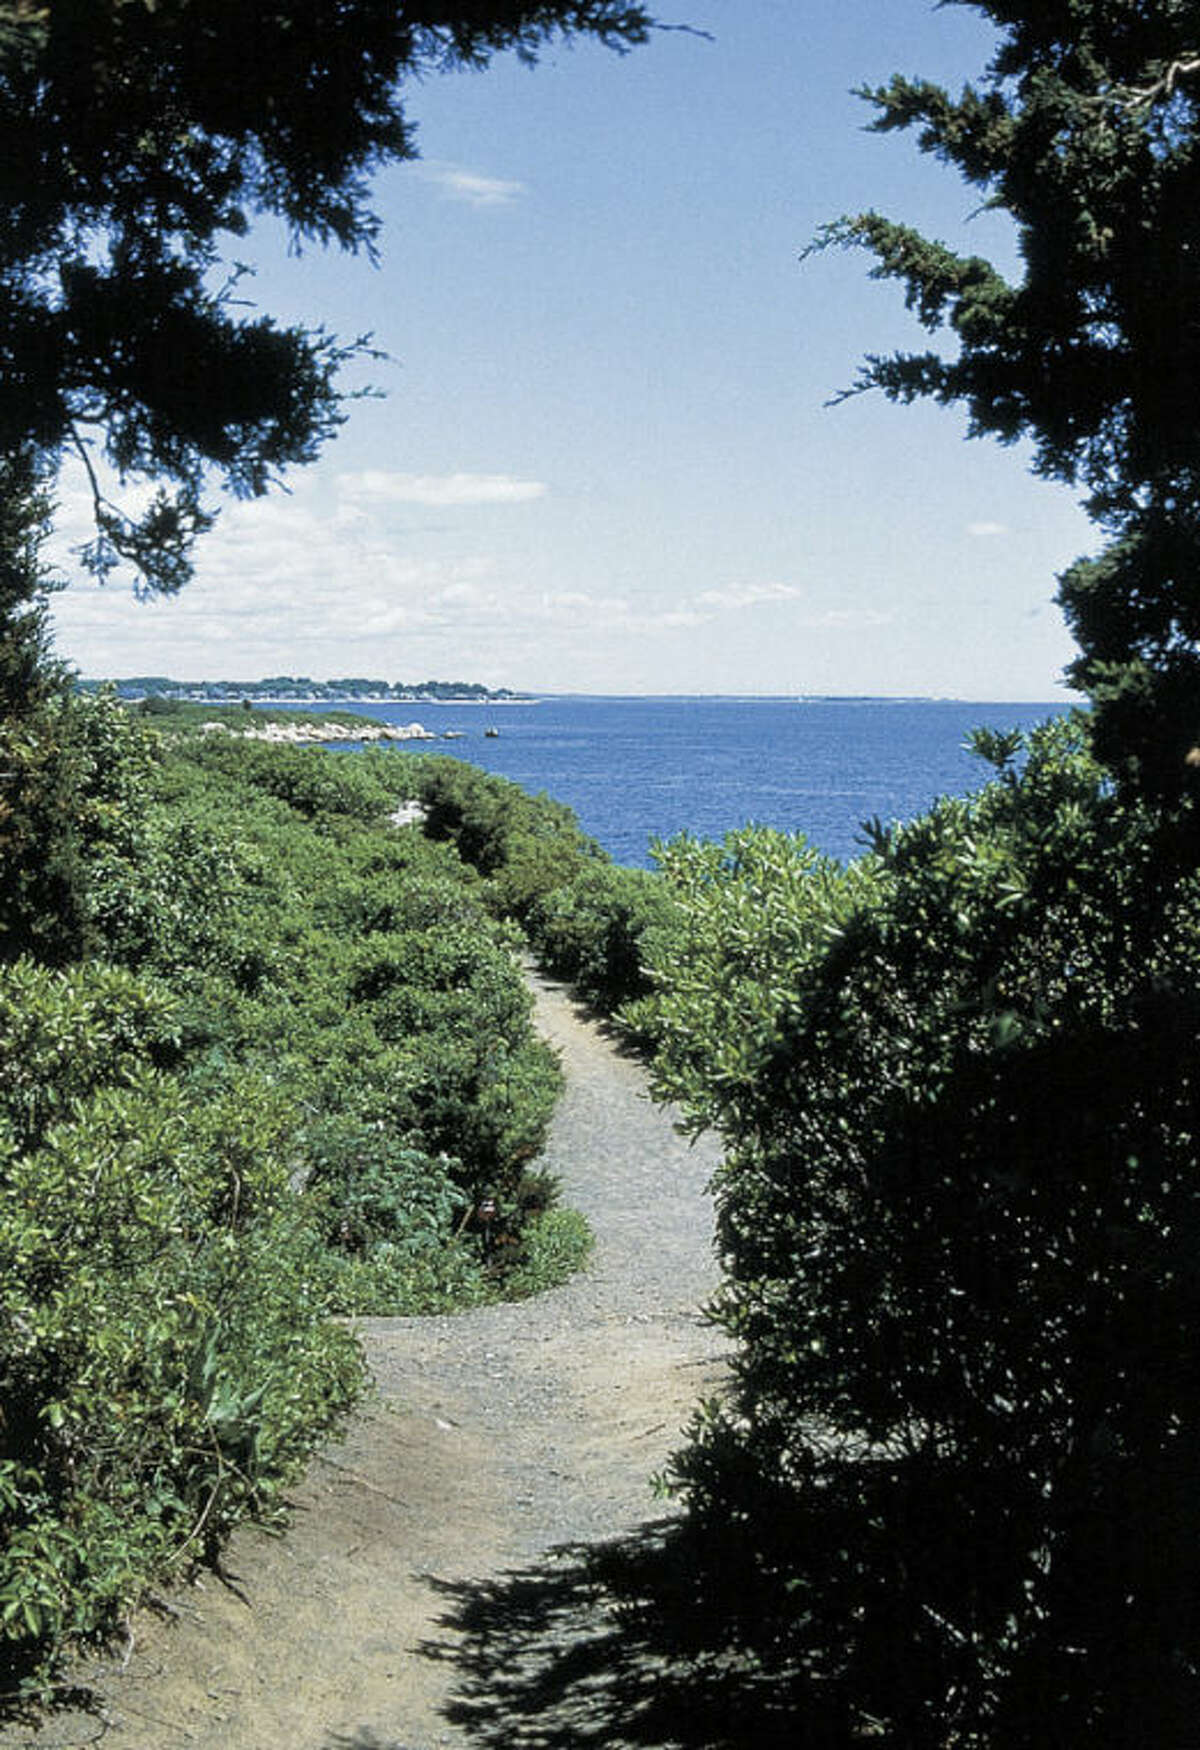 This undated photo provided by the Connecticut Office of Tourism shows a path at Hammonasset Beach State Park in Madison, Conn. Hammonasset is the state?'s largest shoreline park, with a boardwalk and more than 2 miles of beach. Parking is free from mid-September to April 20. (AP Photo/Connecticut Office of Tourism)